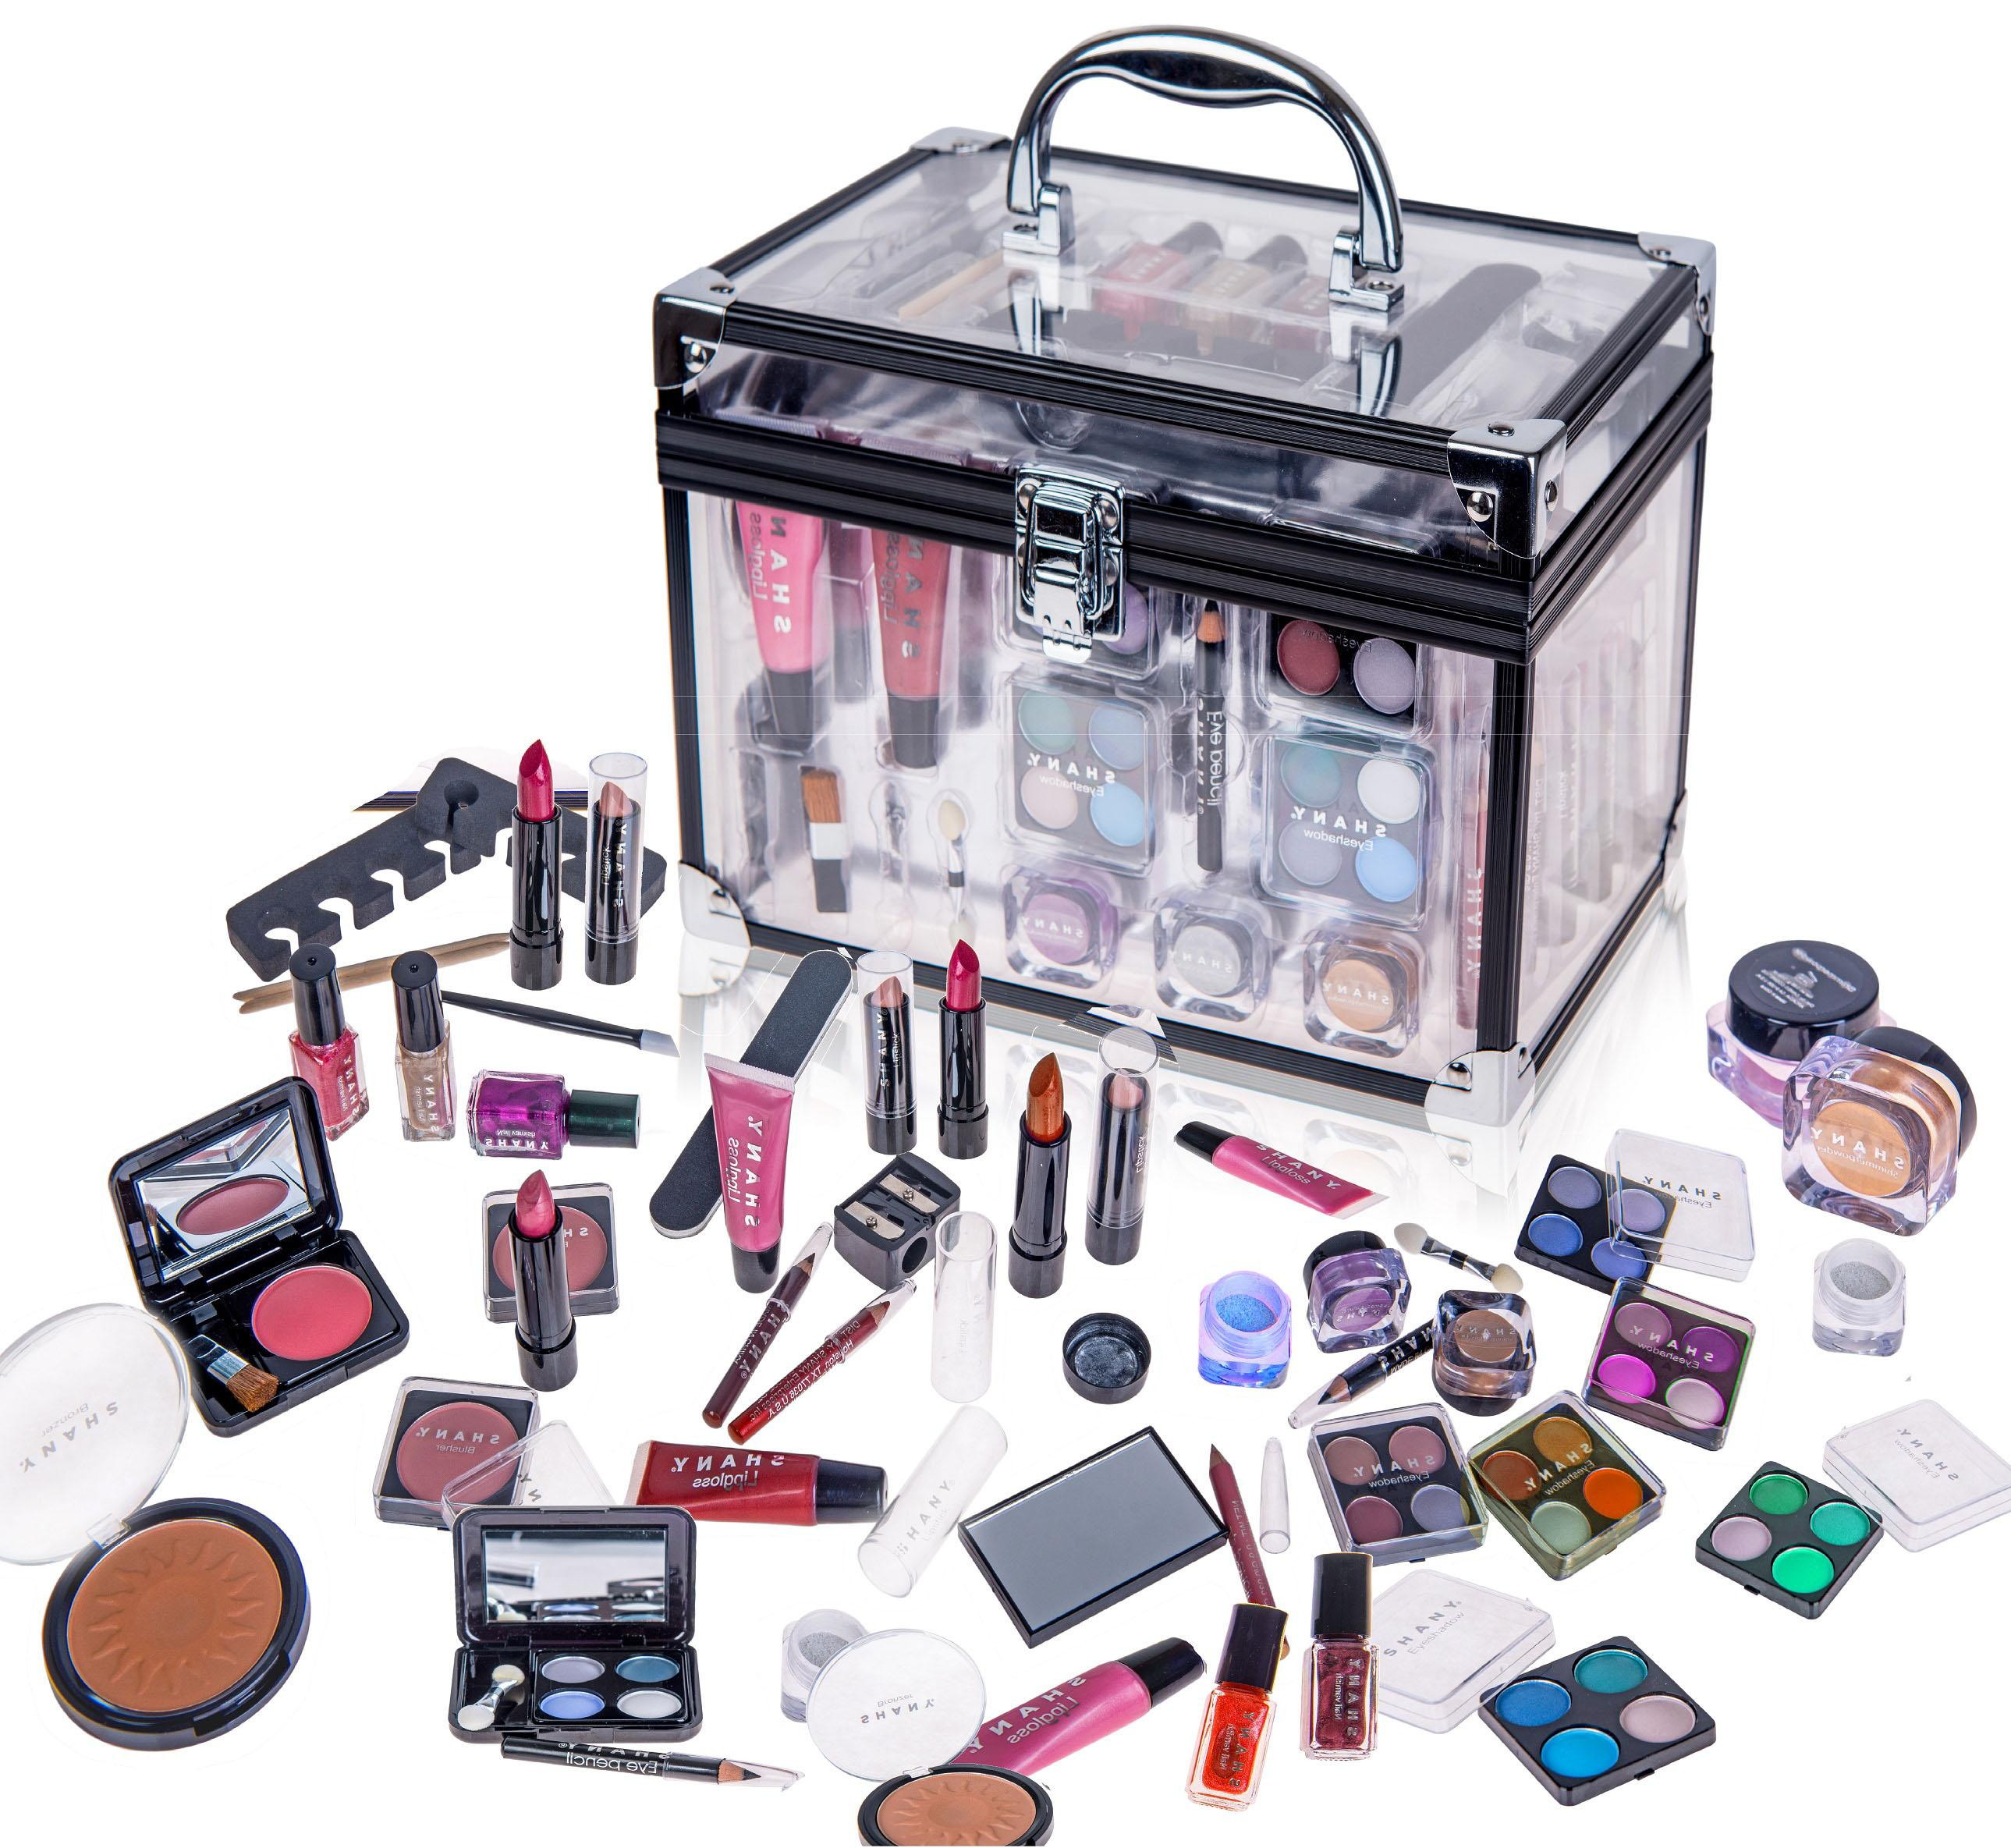 Amazon.com: SHANY Carry All Trunk Professional Makeup Kit ...